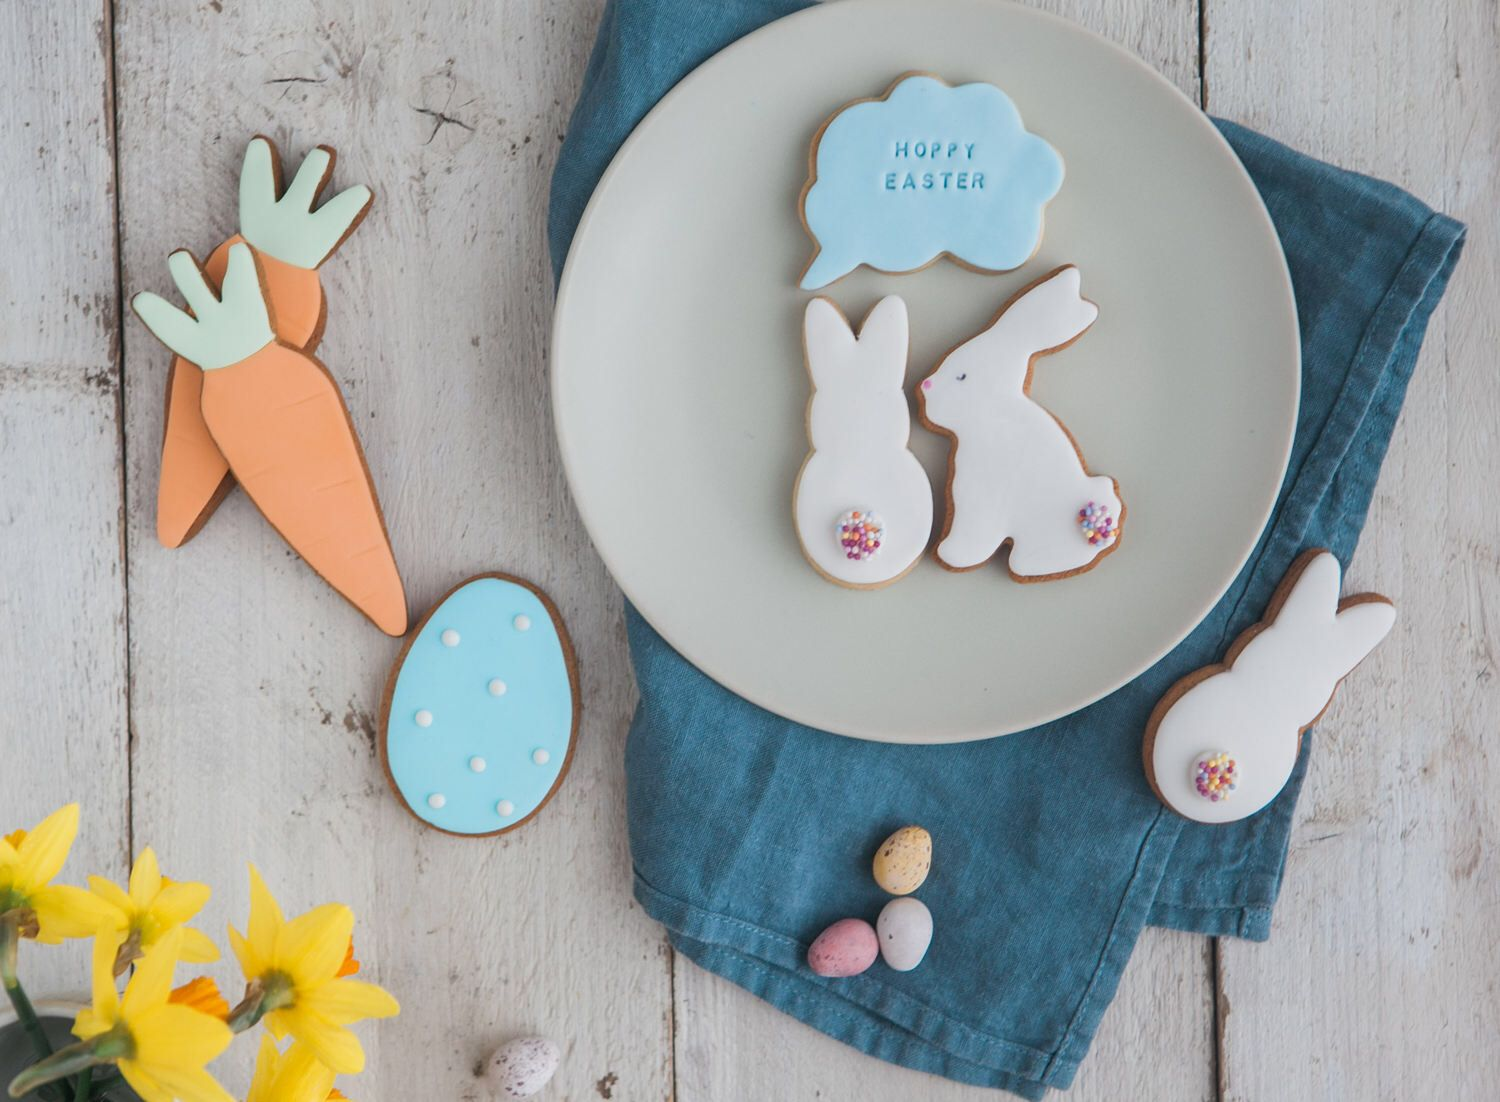 Hoppy easter biscuit gift set bunny biscuits easter cookies hoppy easter biscuit gift set bunny biscuits easter cookies novelty easter biscuit gifts negle